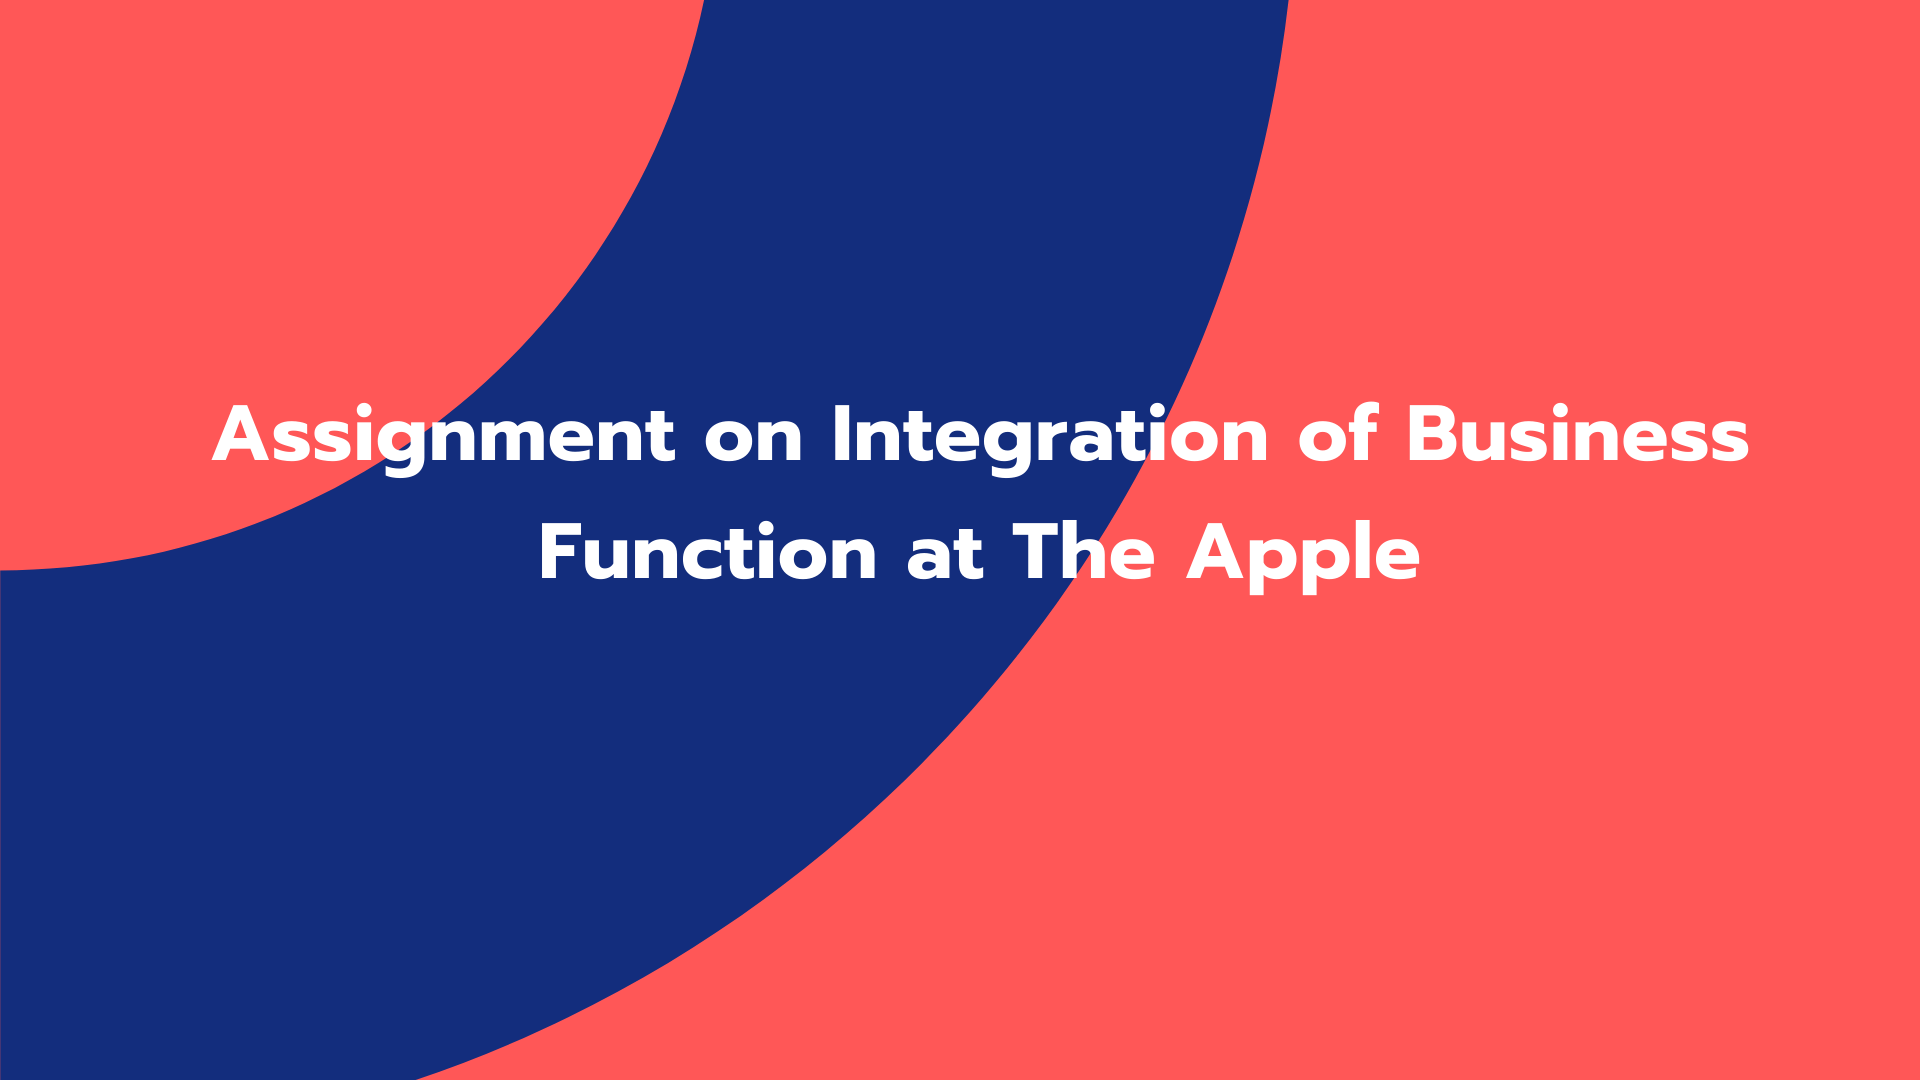 Assignment on Integration of Business Function at The Apple